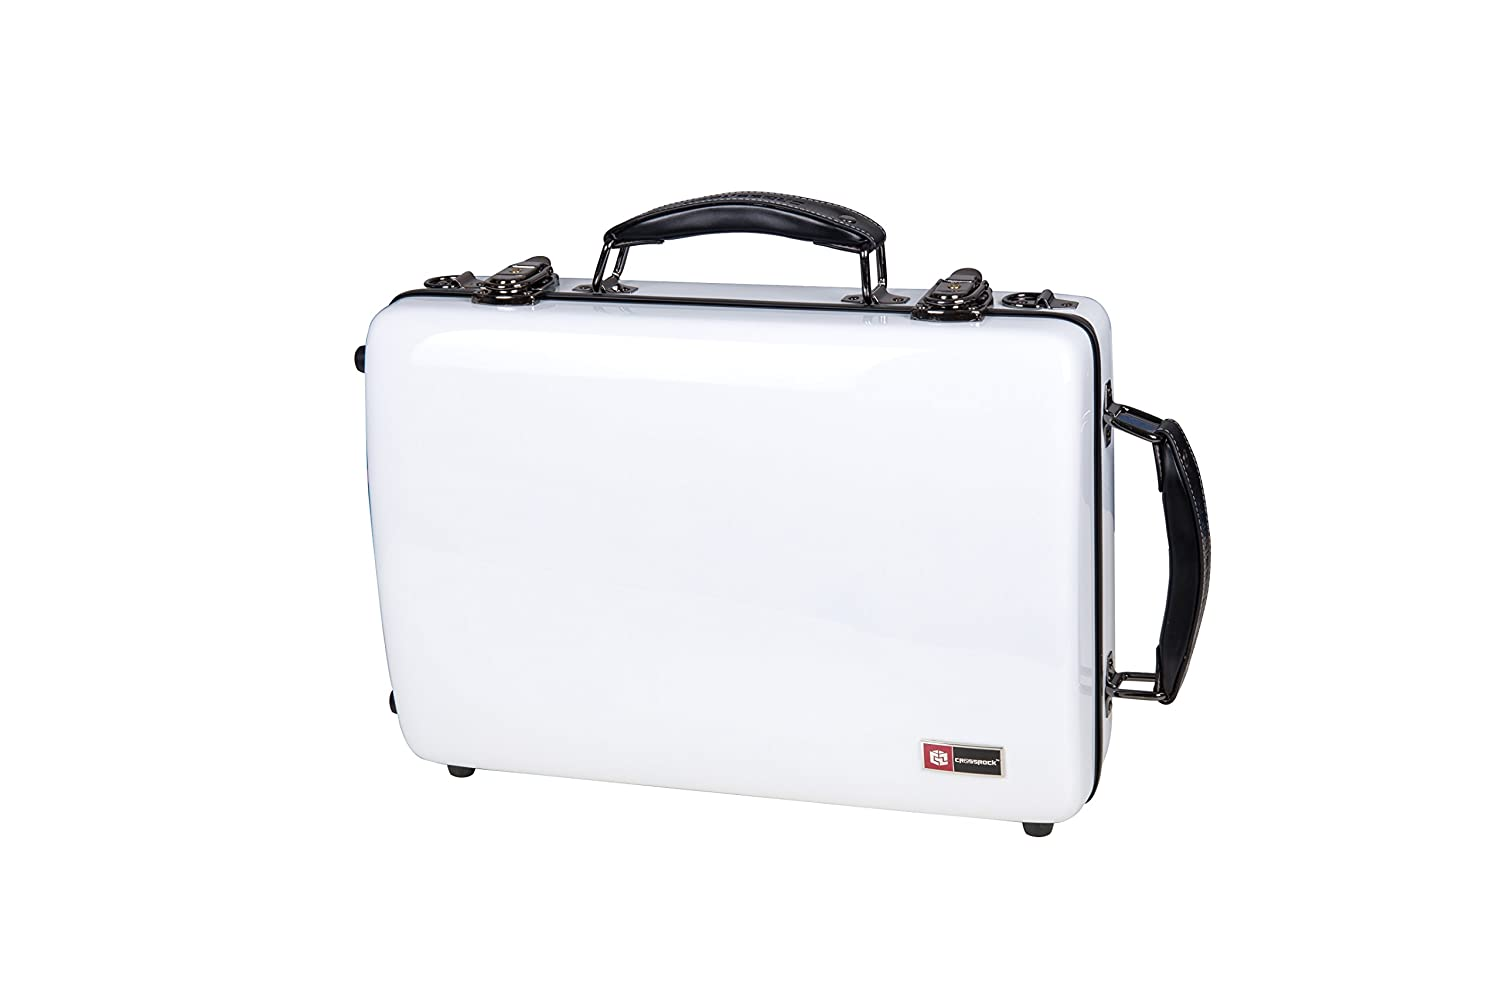 Crossrock CRA860CLBK Clarinet Case ABS Molded Hard Shell, Black Crossrock Case Company